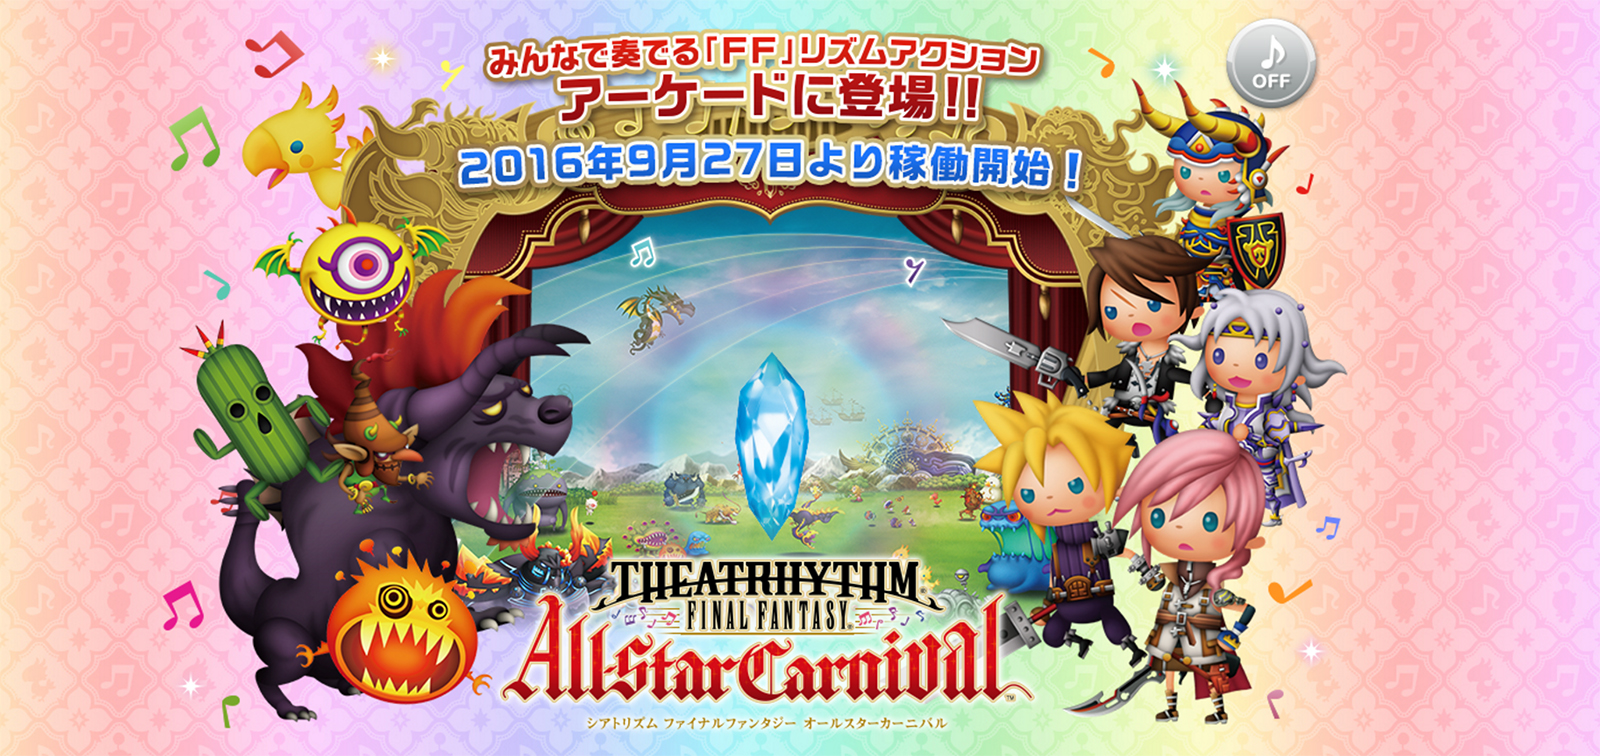 theatrhythm_final_fantasy_allstar_carnival.jpg